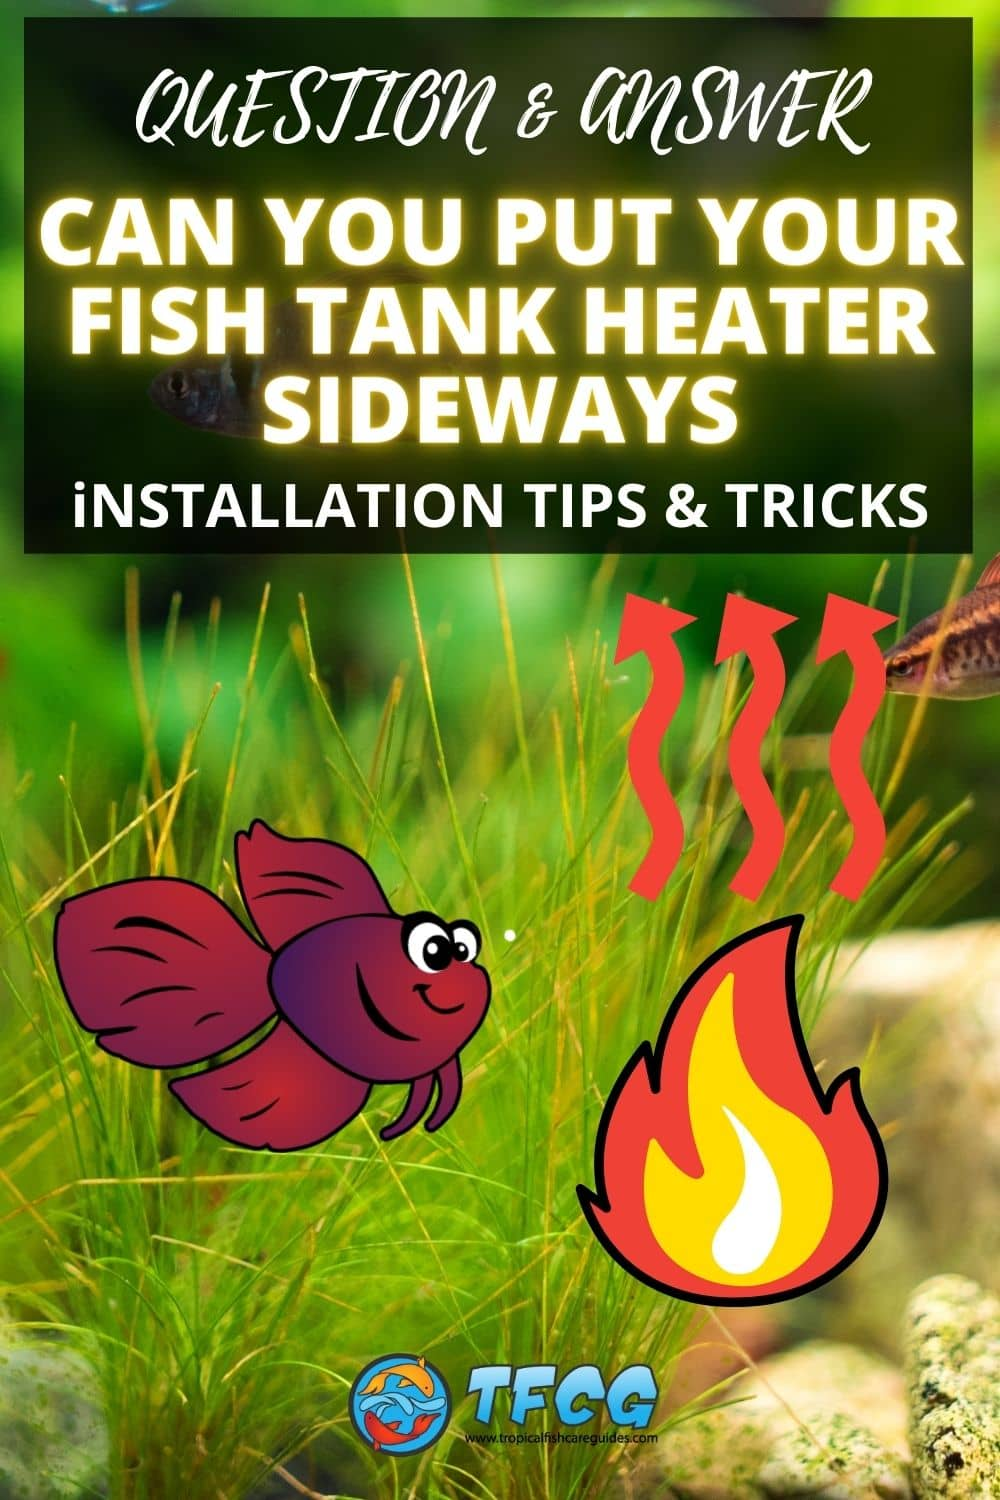 Can You Put Your Fish Tank Heater Sideways